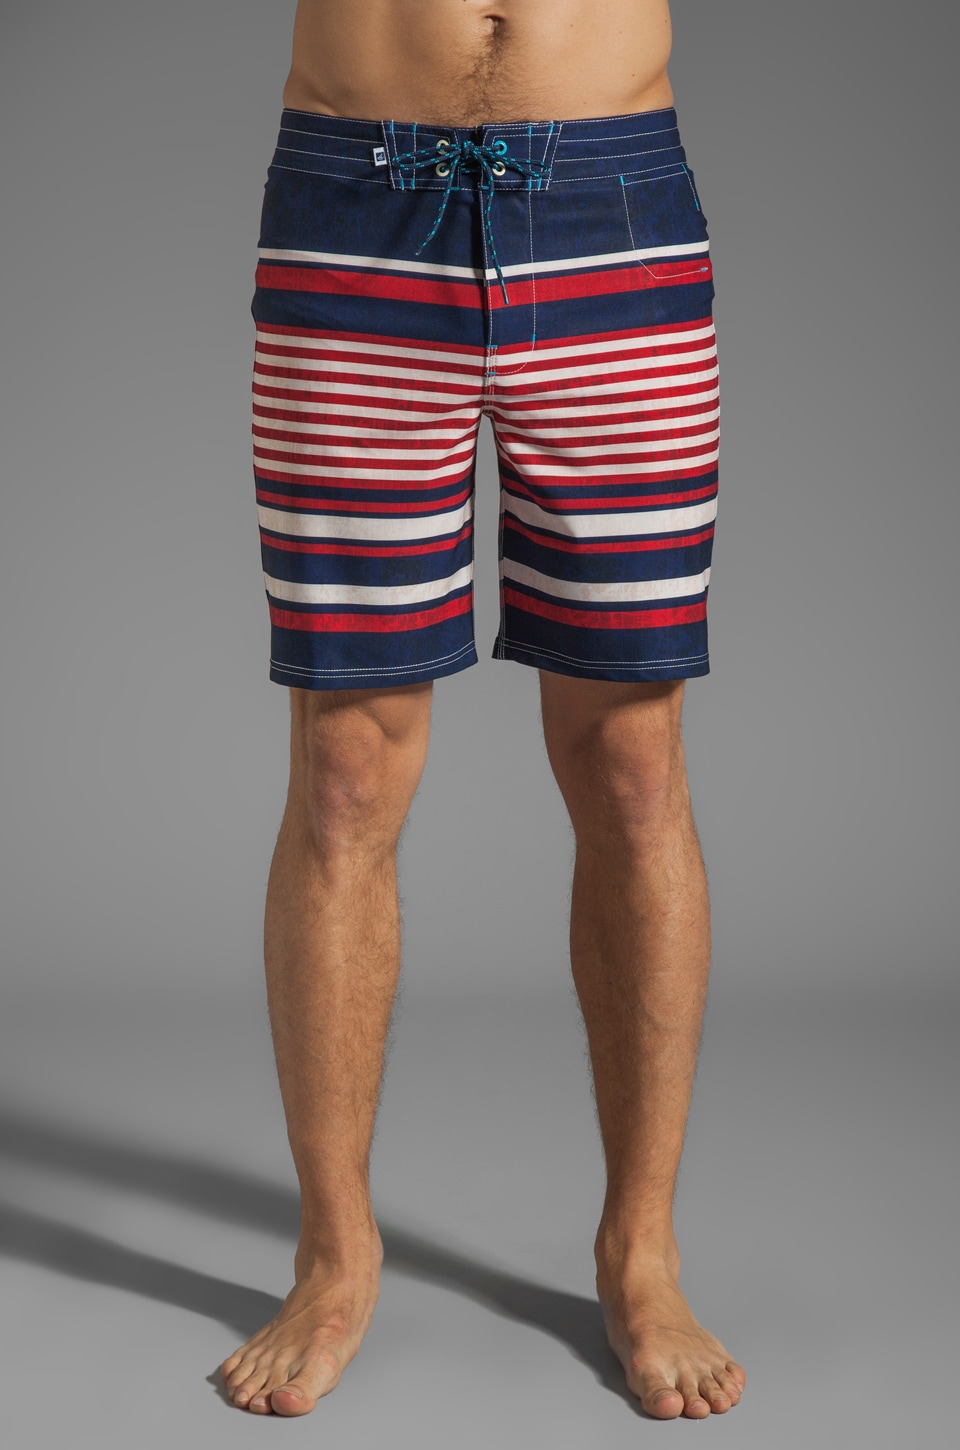 Sperry Top-Sider Walk The Plank Boardshort in Crimson